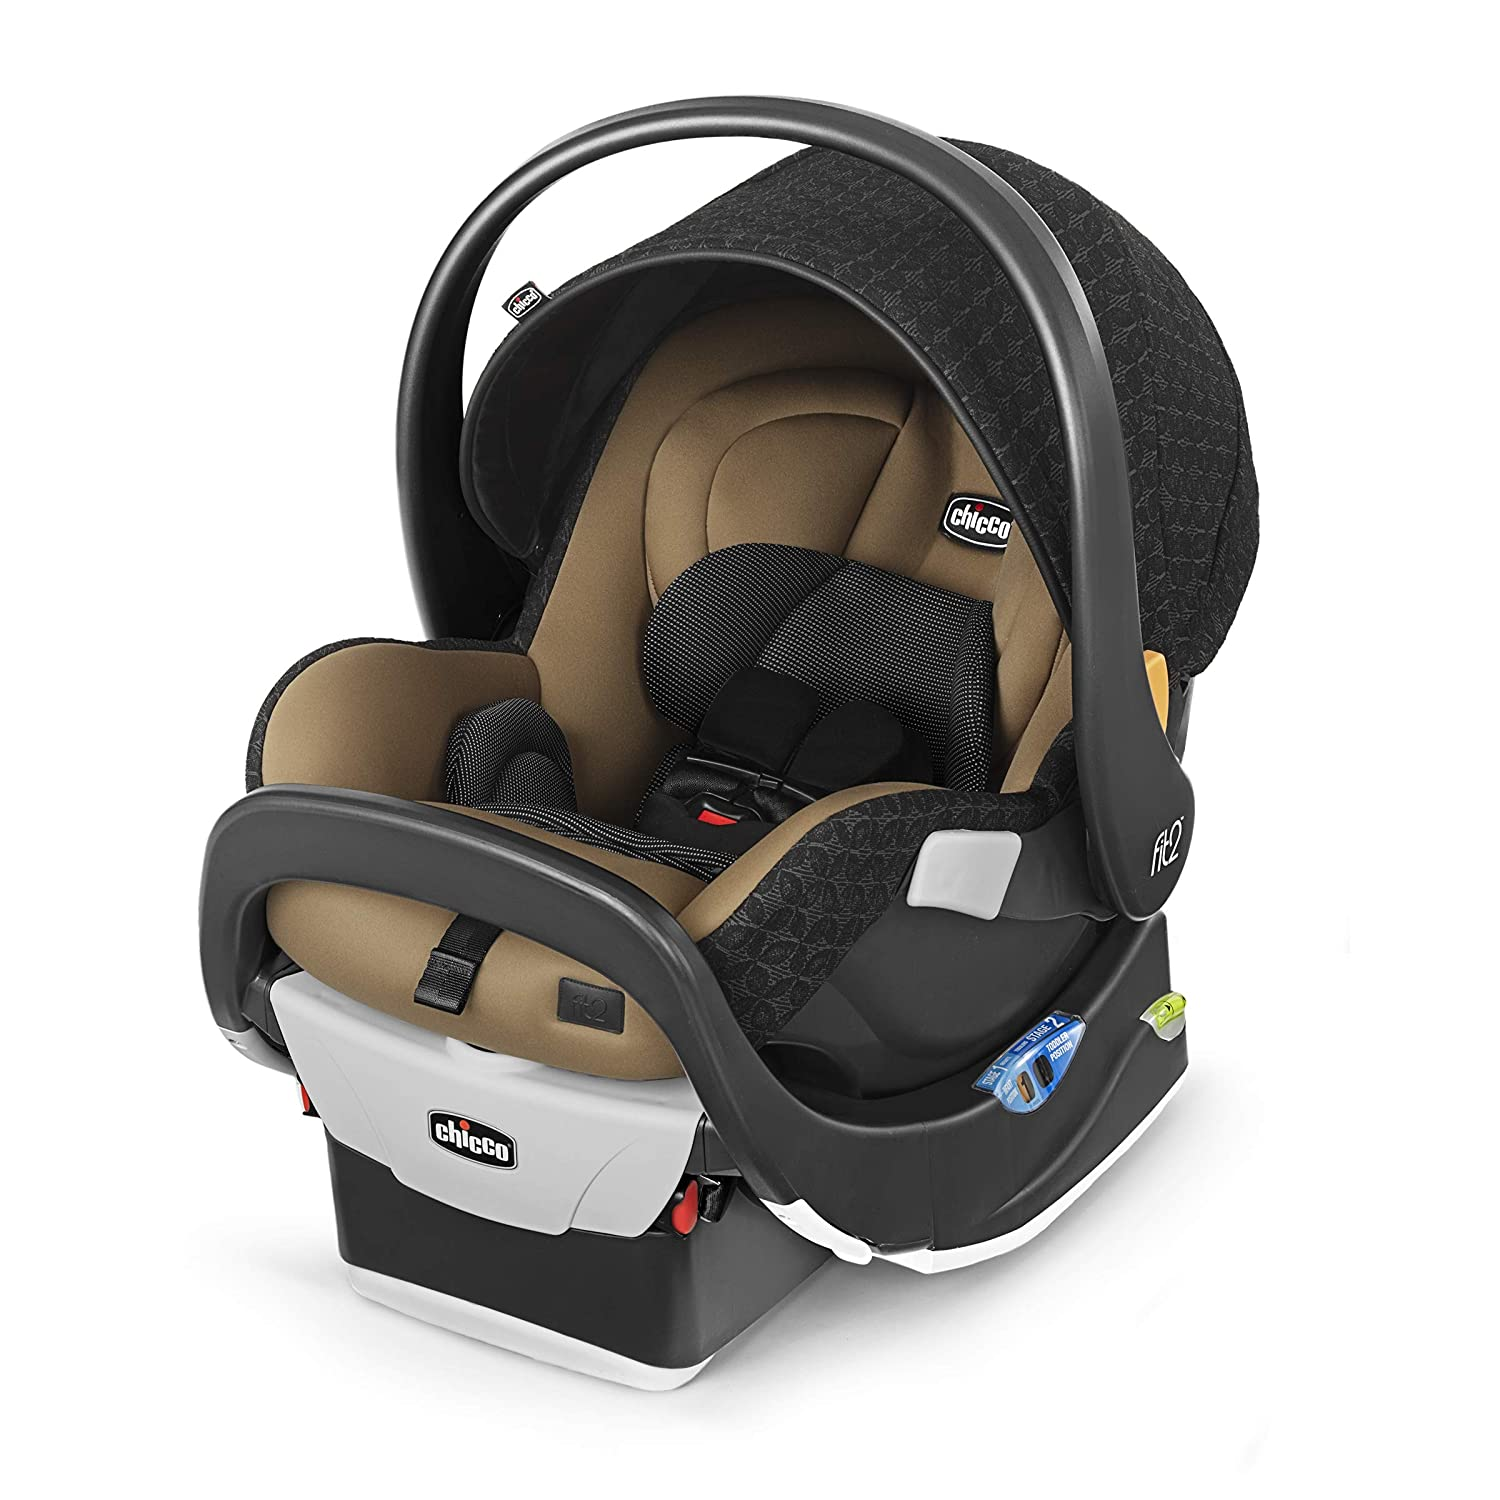 Chicco Fit2 Infant & Toddler